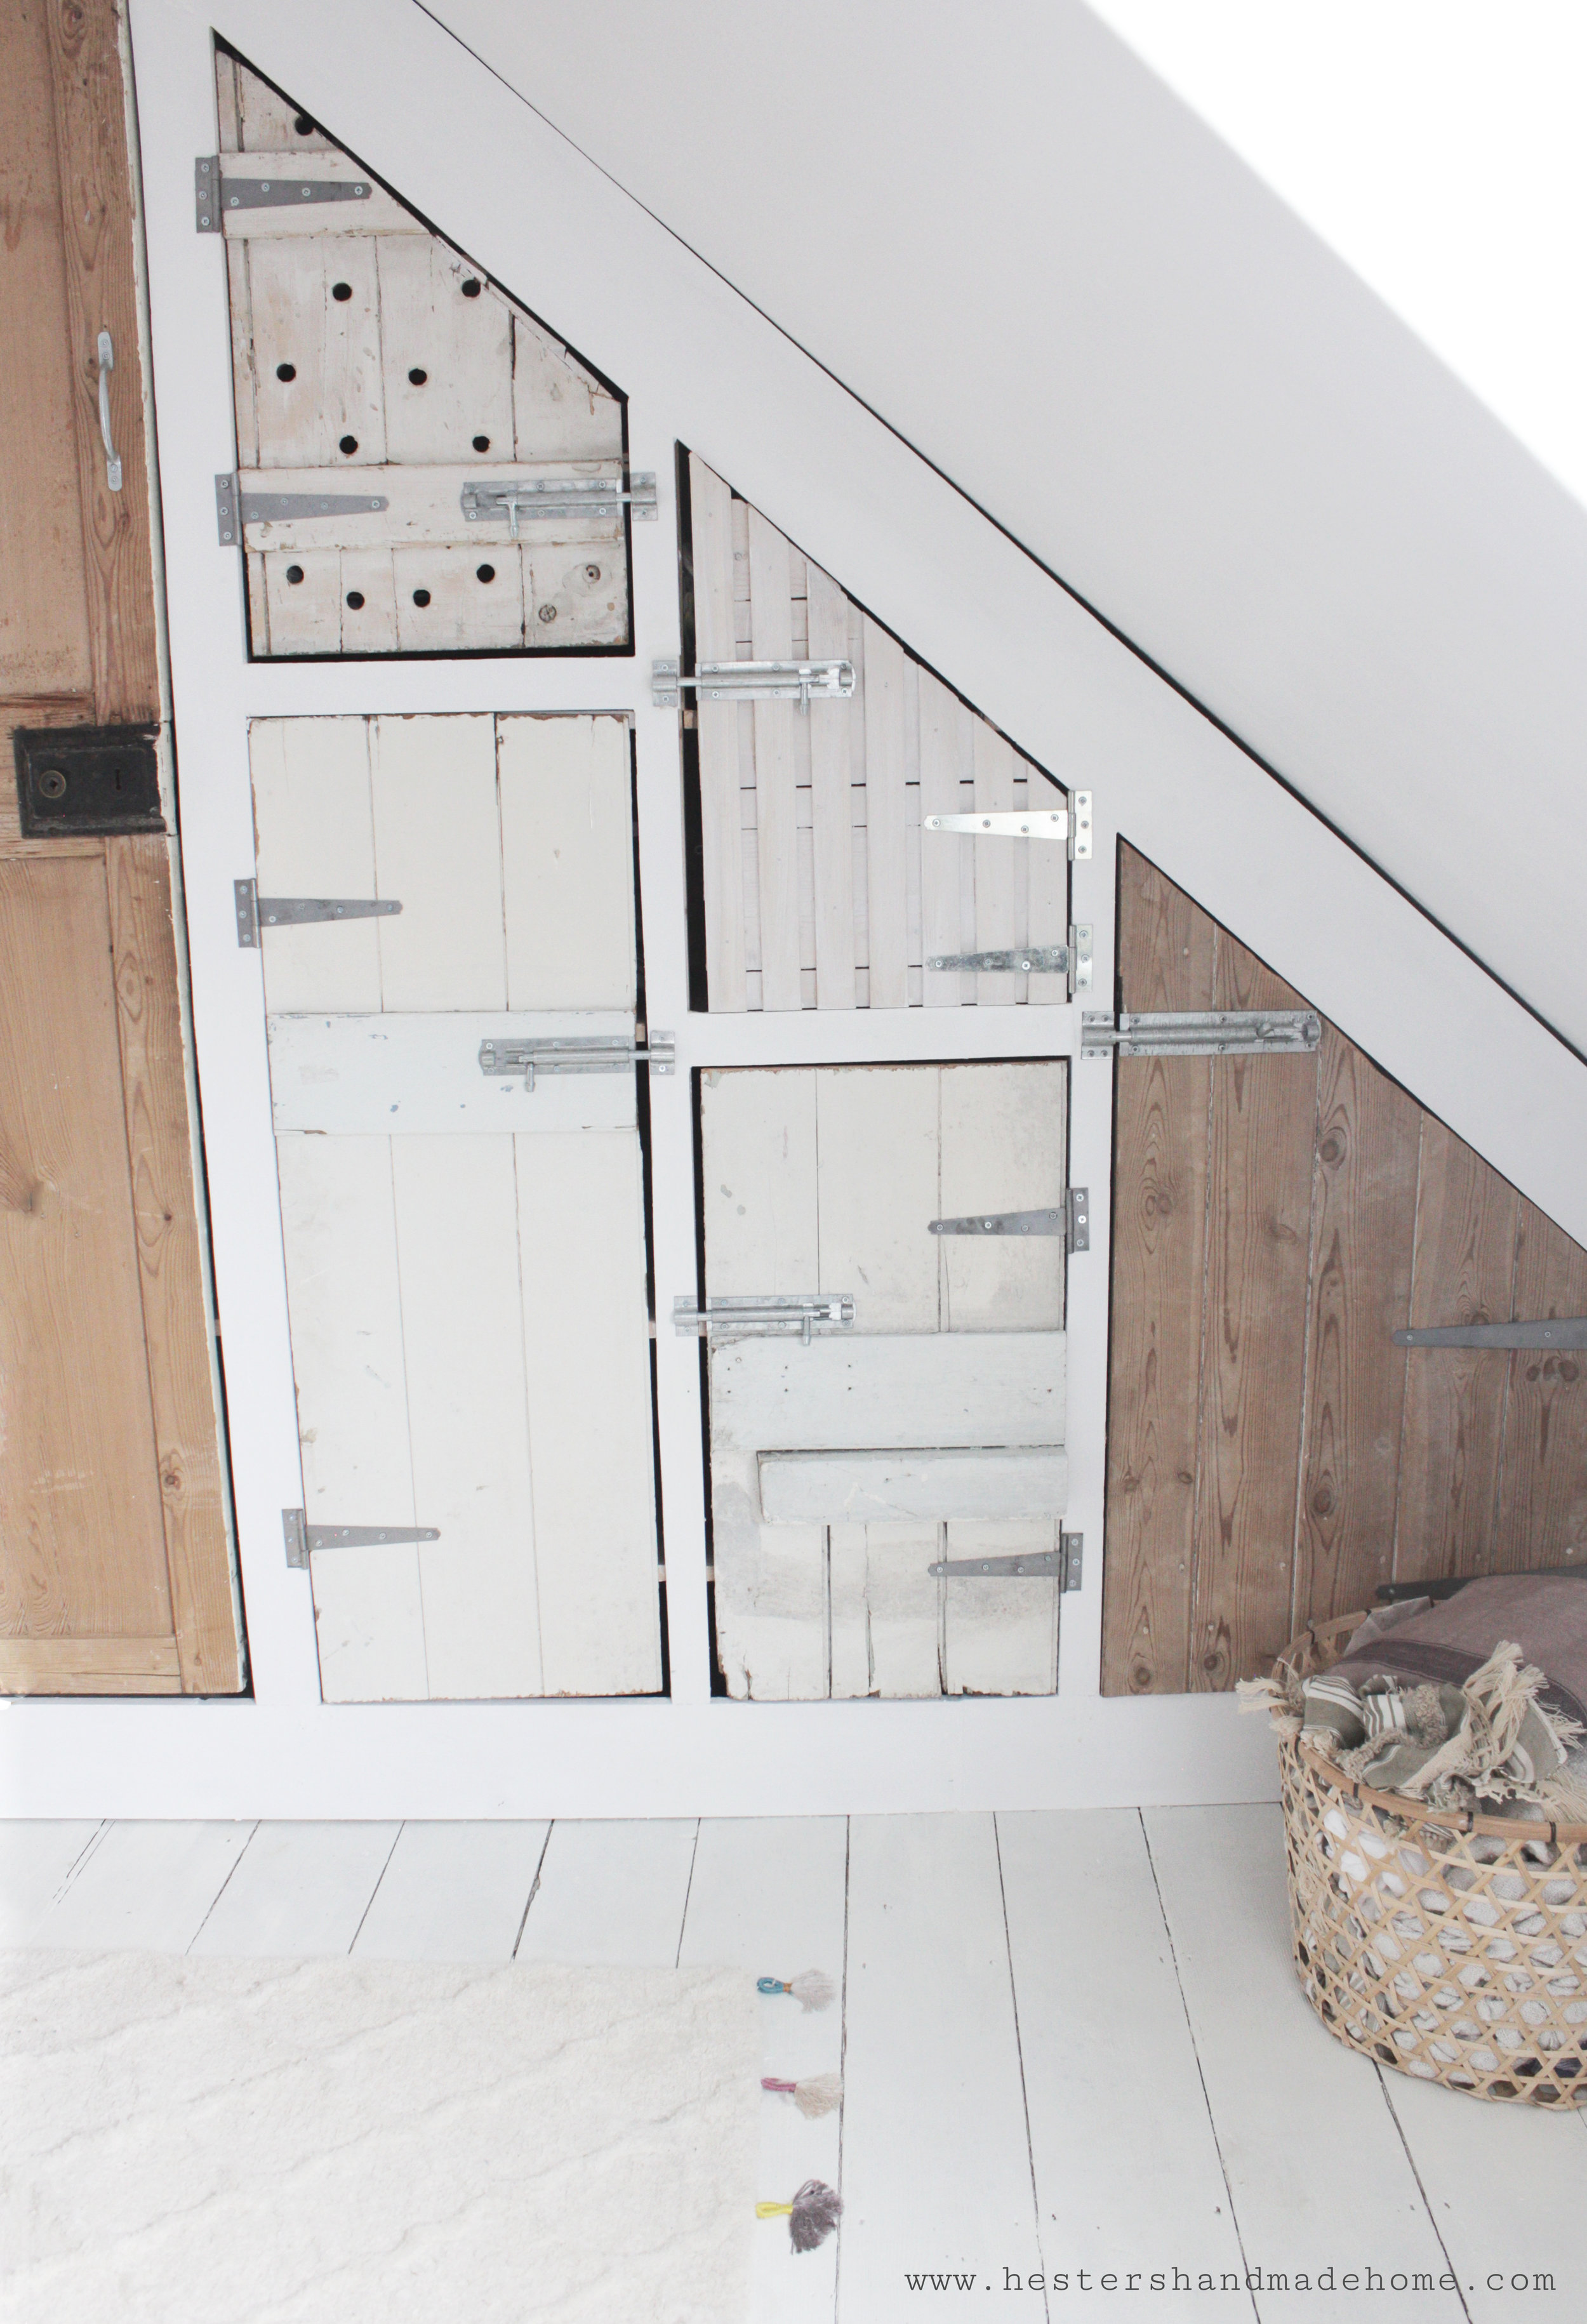 Use reclaimed doors in your build like hester from hester's handmade Home did in her big wardrobe build